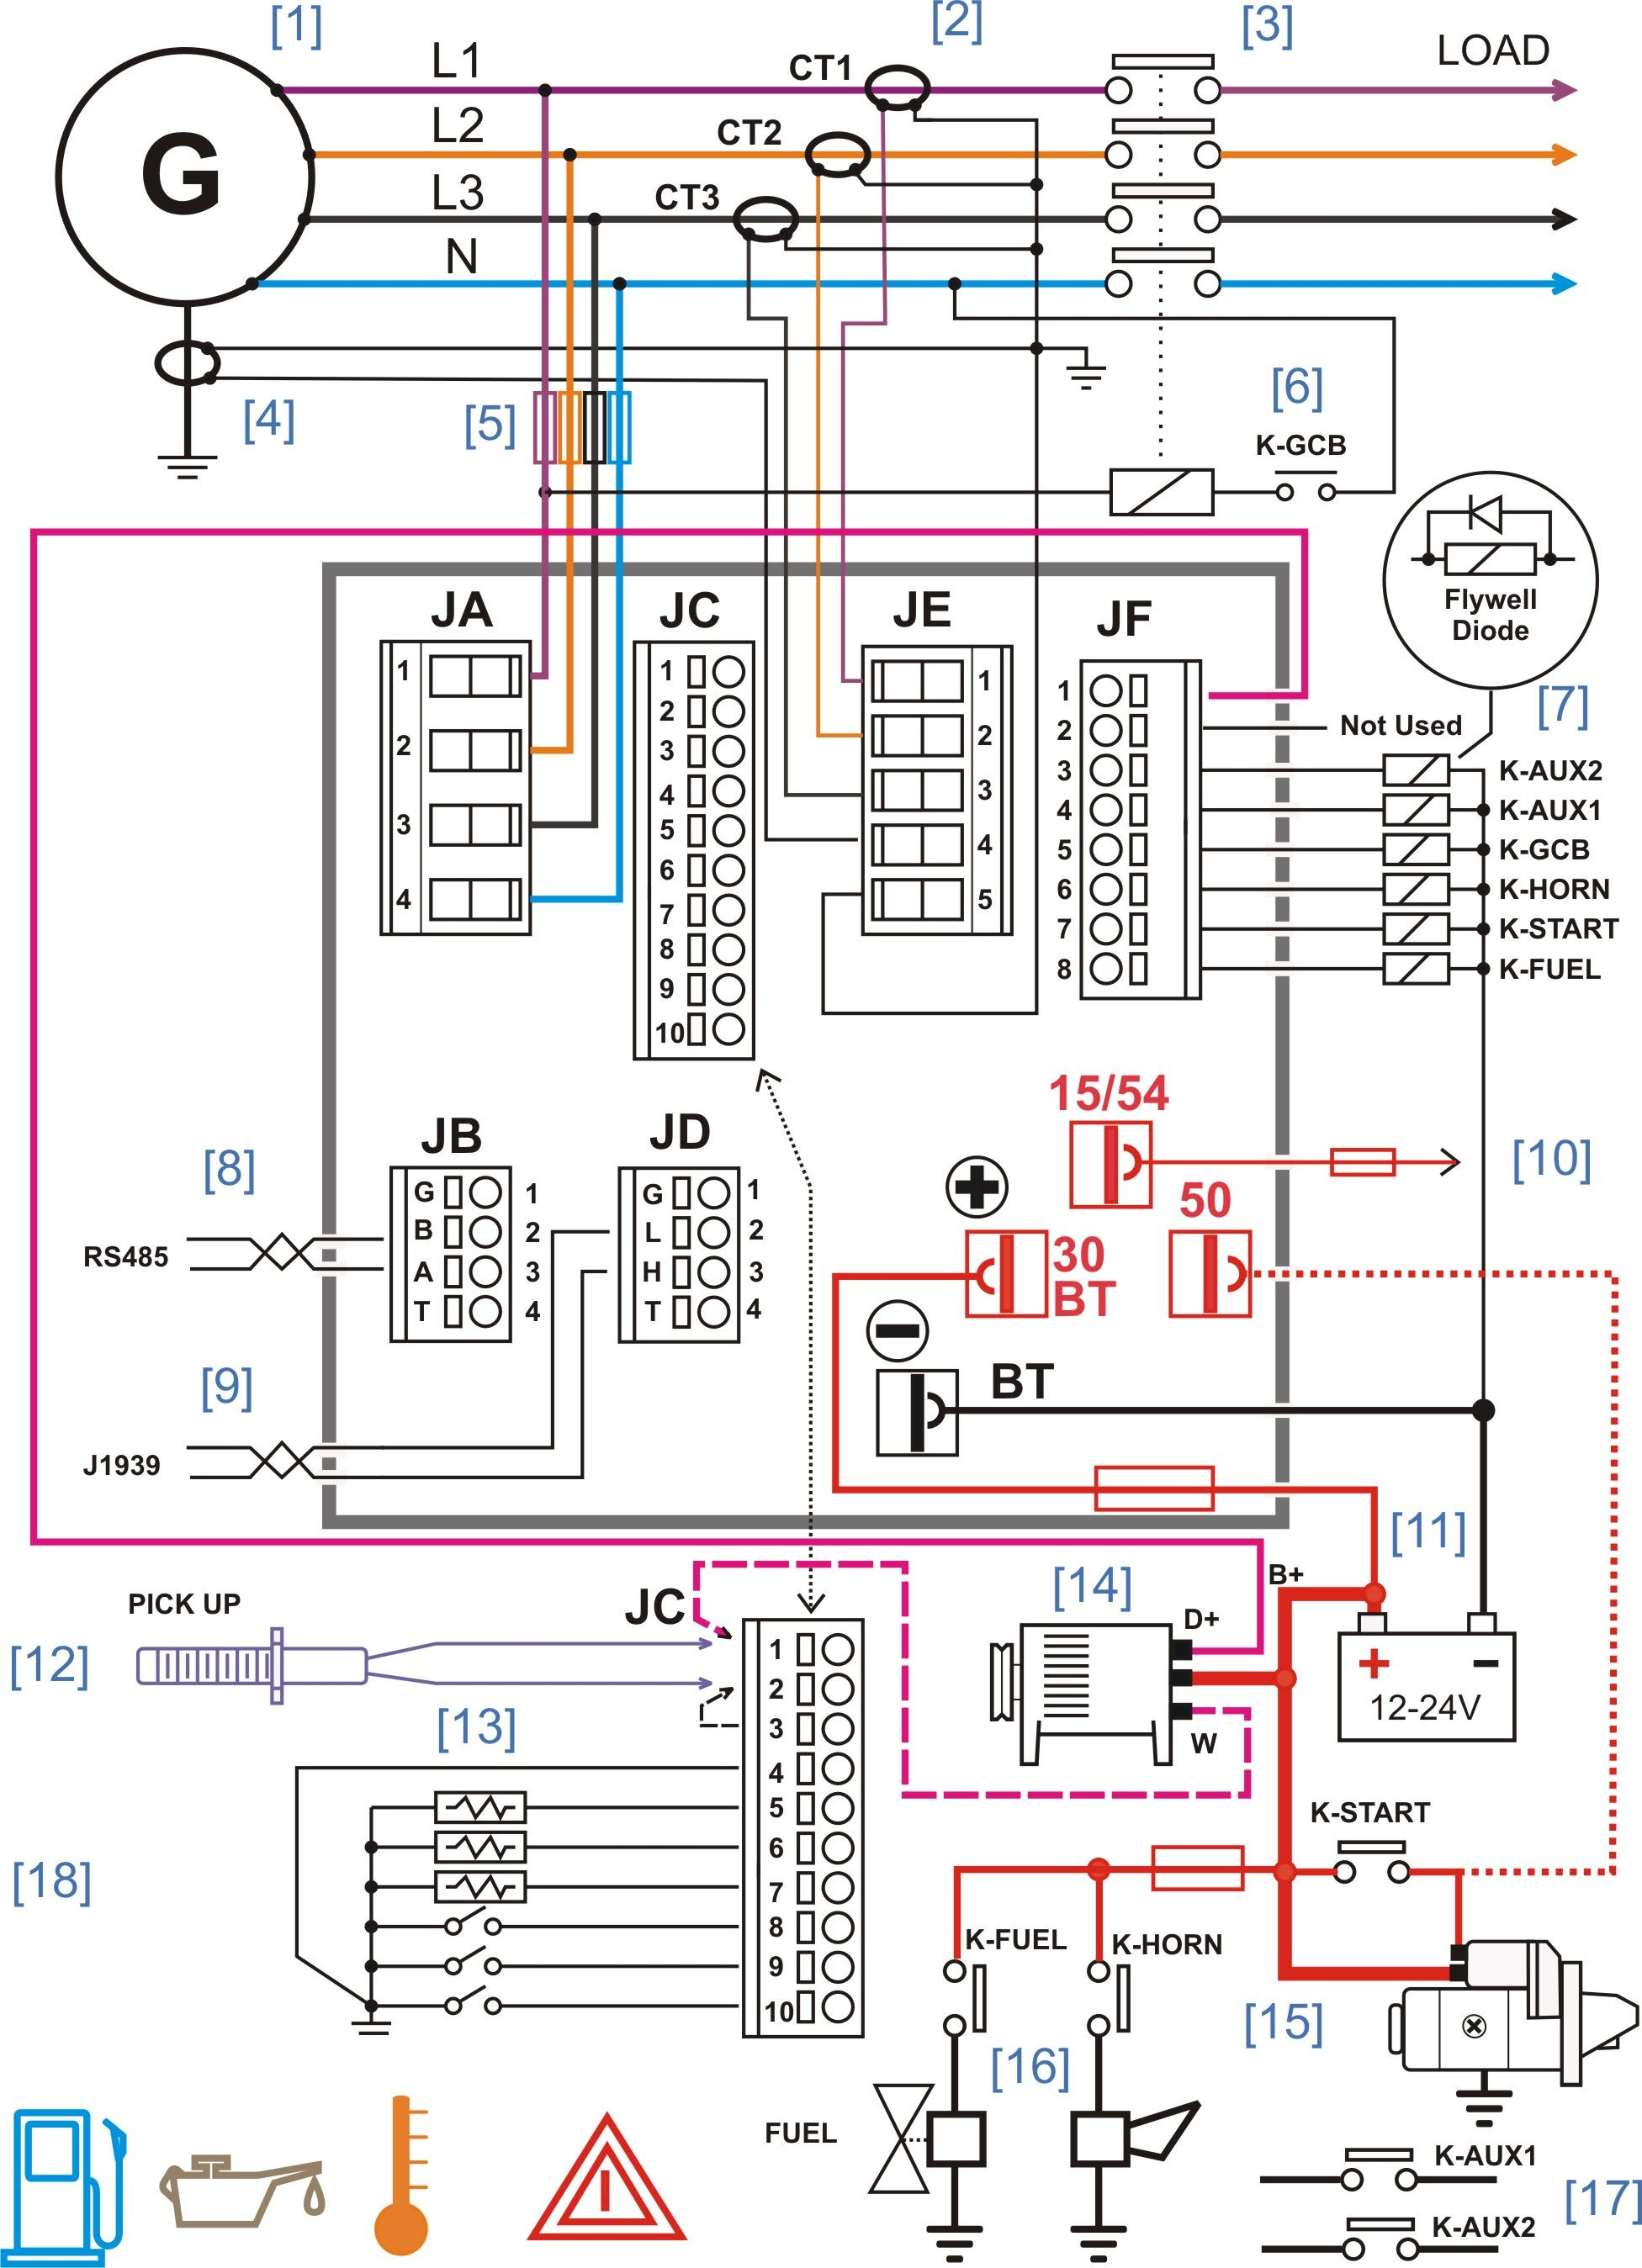 terminal blocks electrical wiring diagram control 3 terminal ignition switch wiring diagram diesel generator control panel wiring diagram | diesel ...